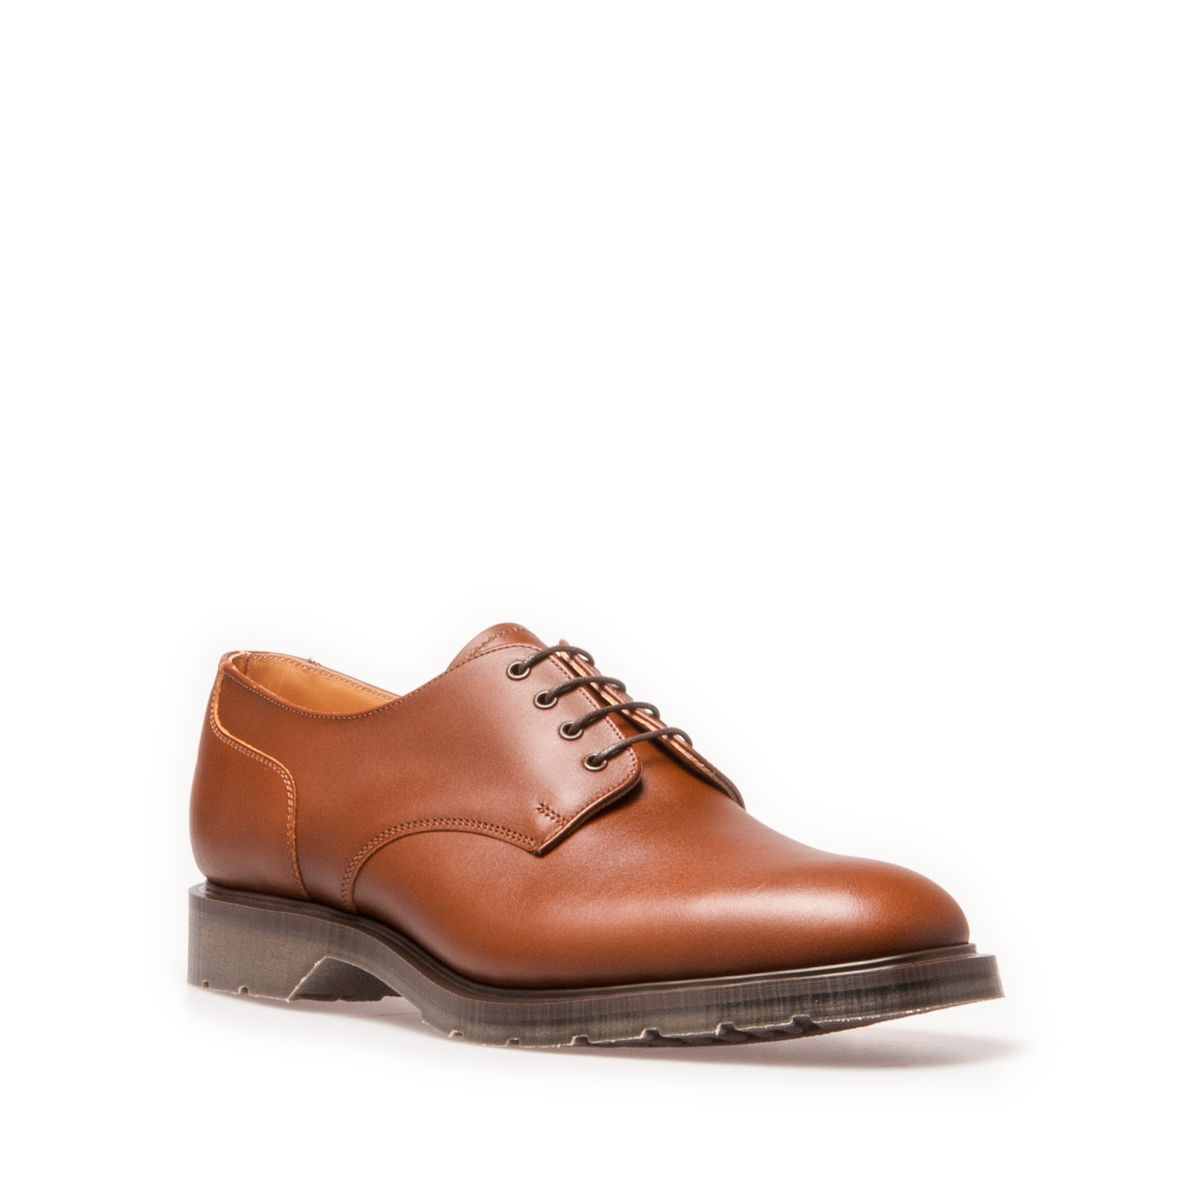 Solovair Gibson Shoe In Chestnut